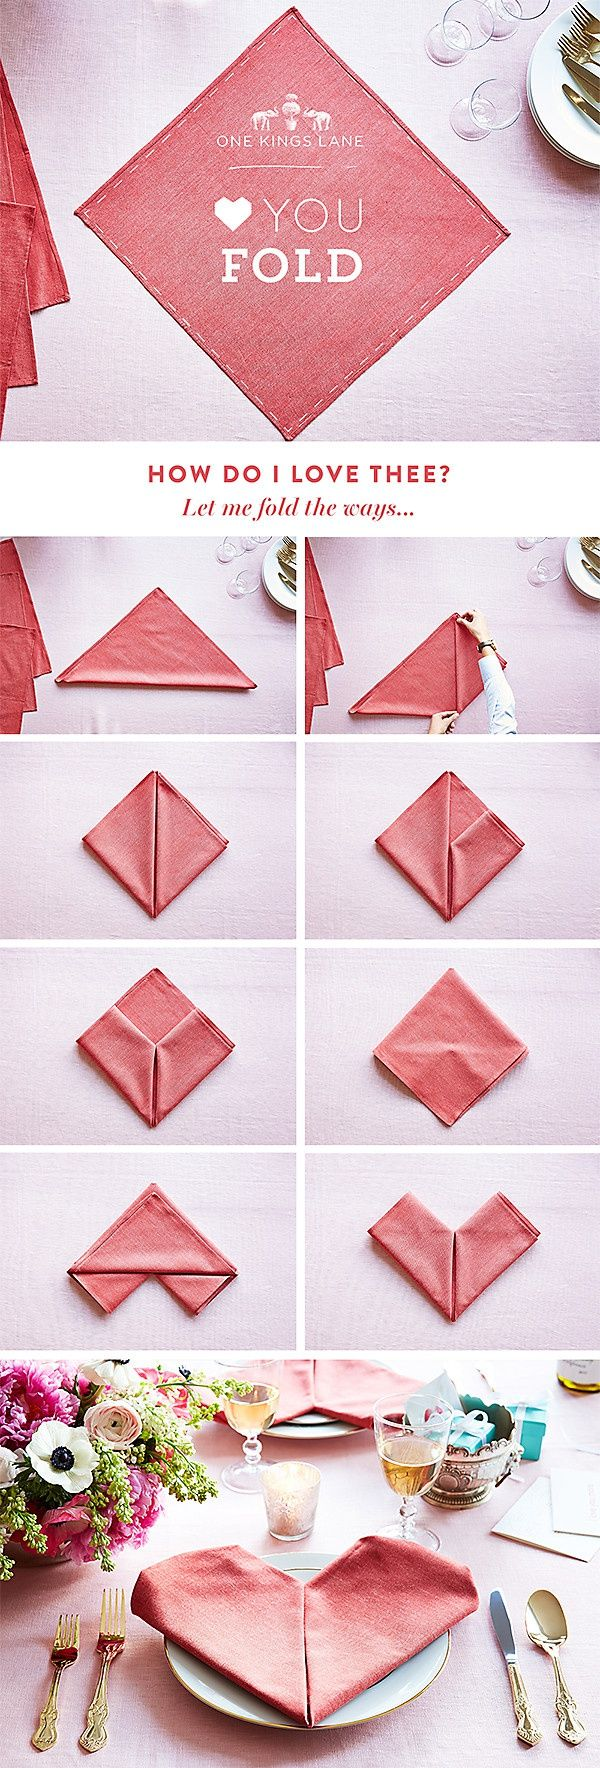 How to fold a napkin in the form of heart (Diy)